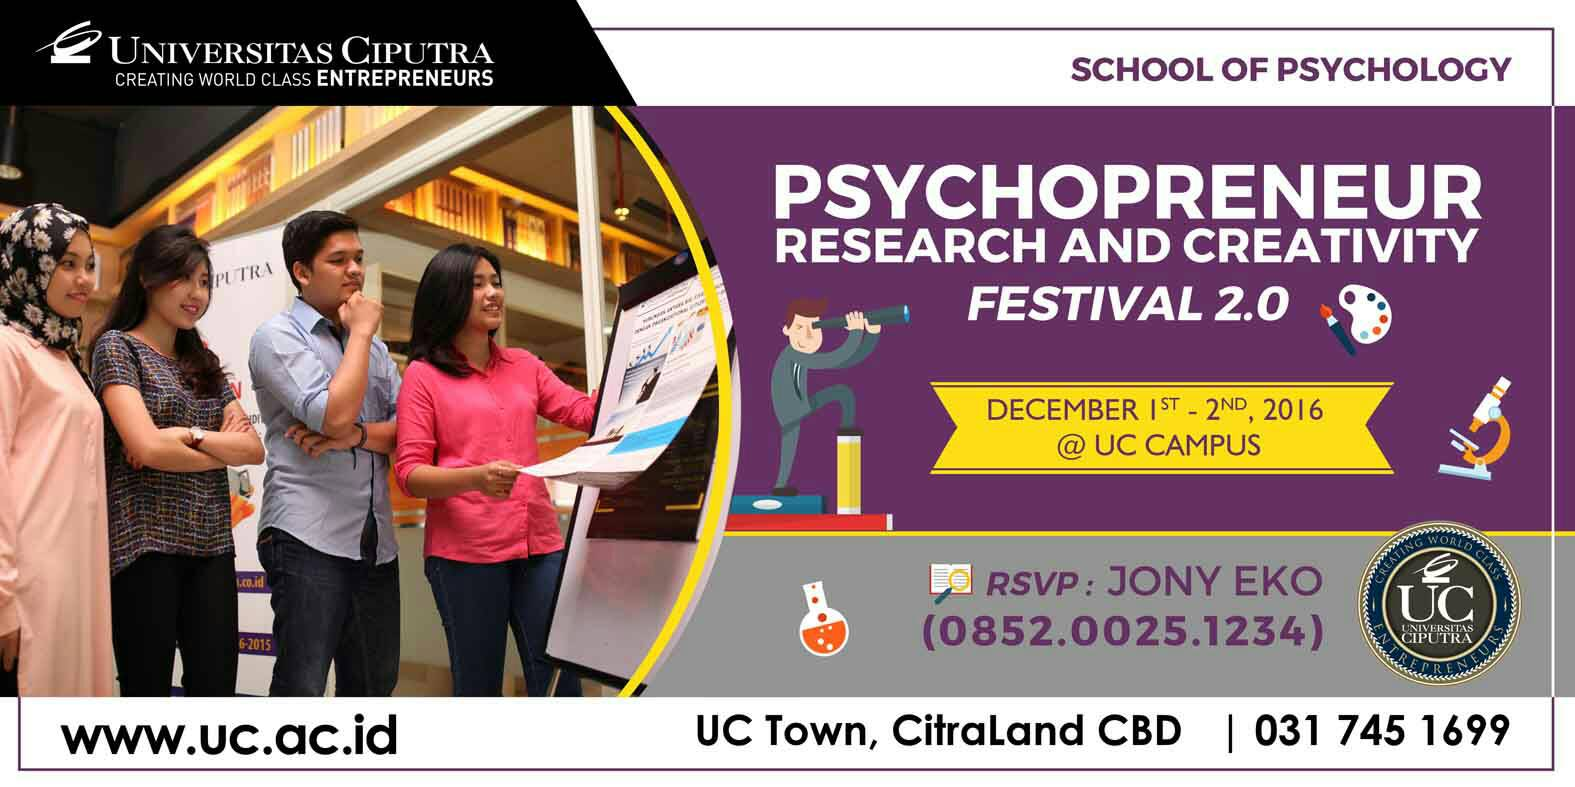 Psychopreneur Research and Creativity Festival 2.0